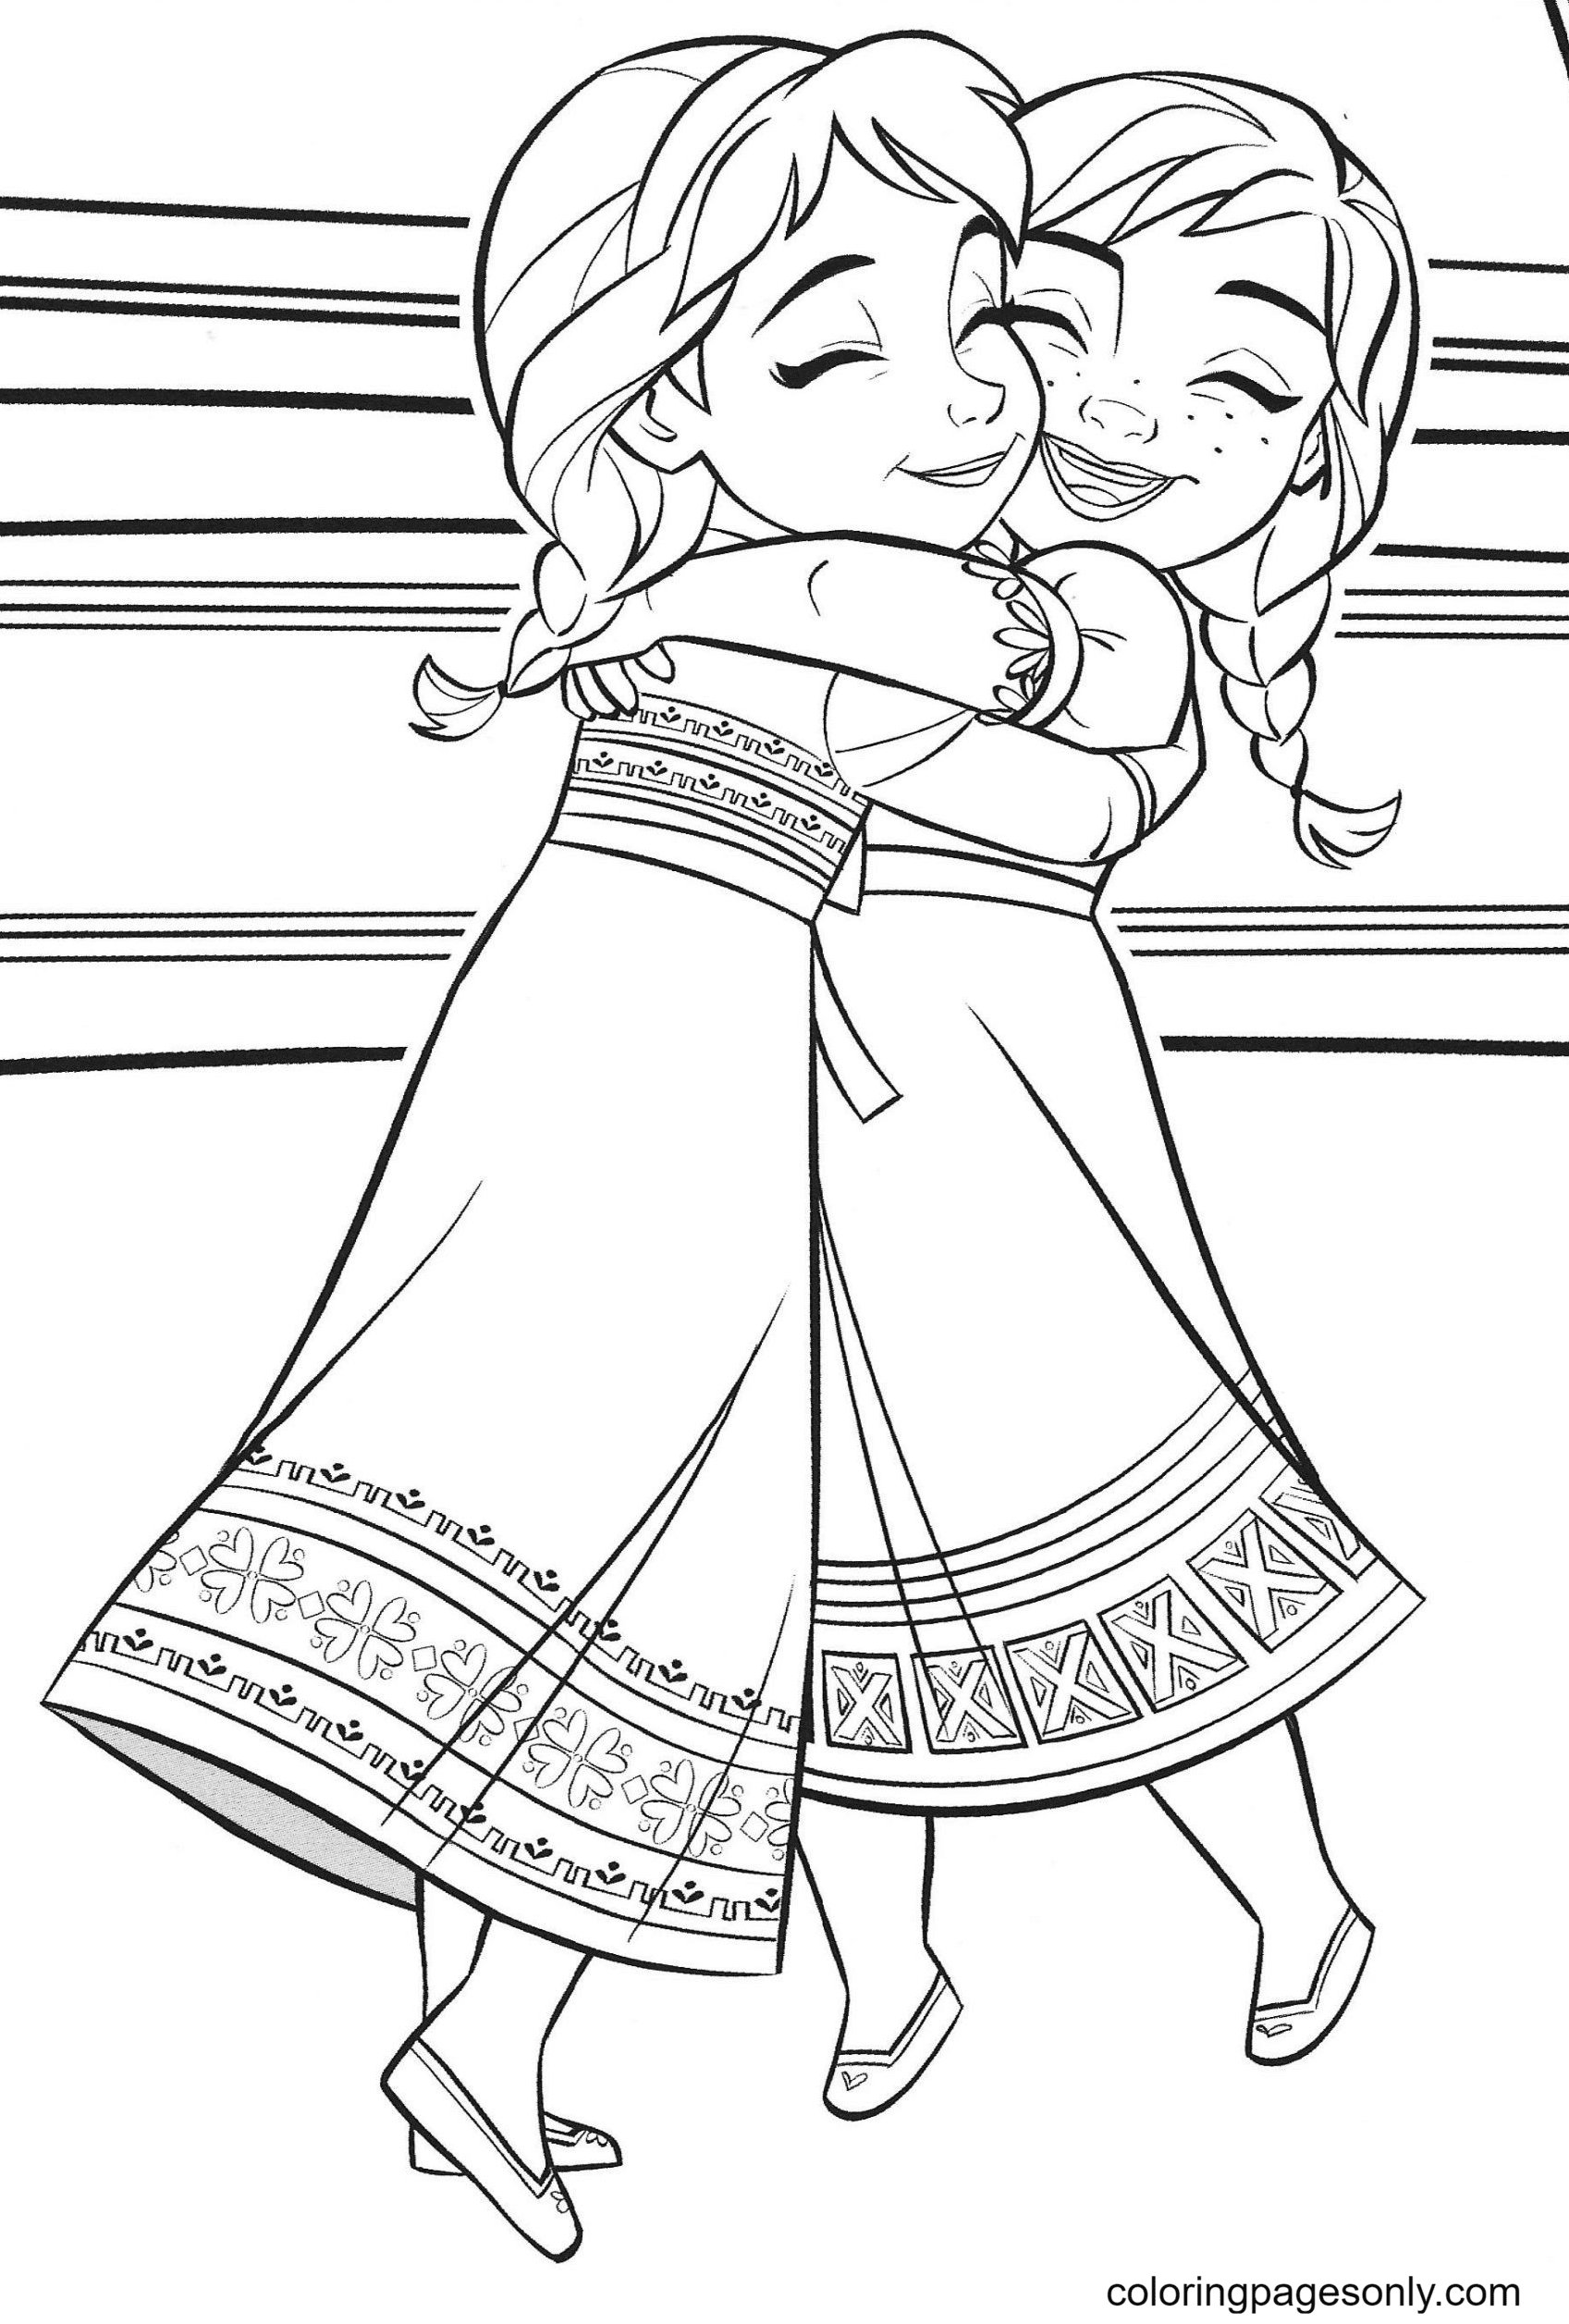 Baby Elsa and Anna Frozen Coloring Page